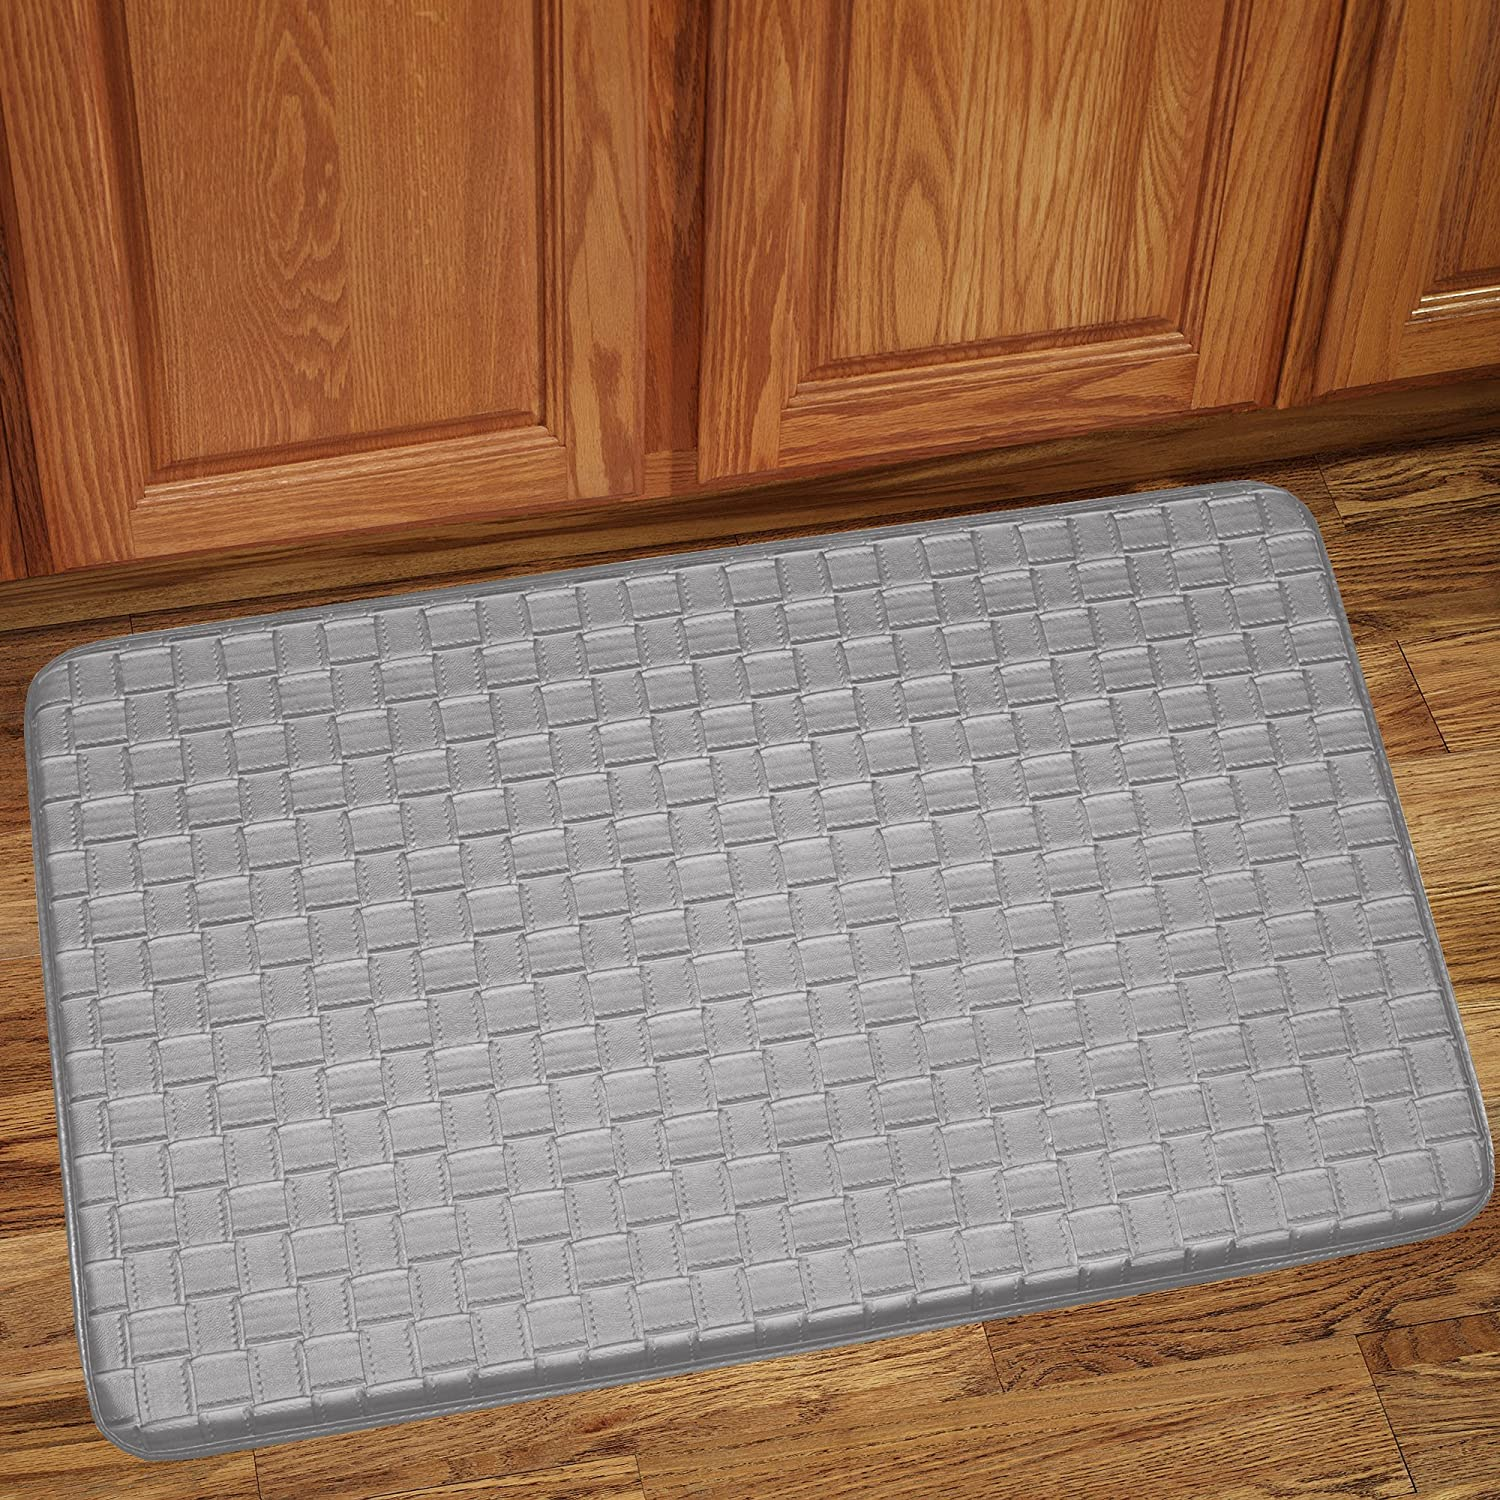 outstanding fabulous with memory mat foam bed images kitchen trends mats